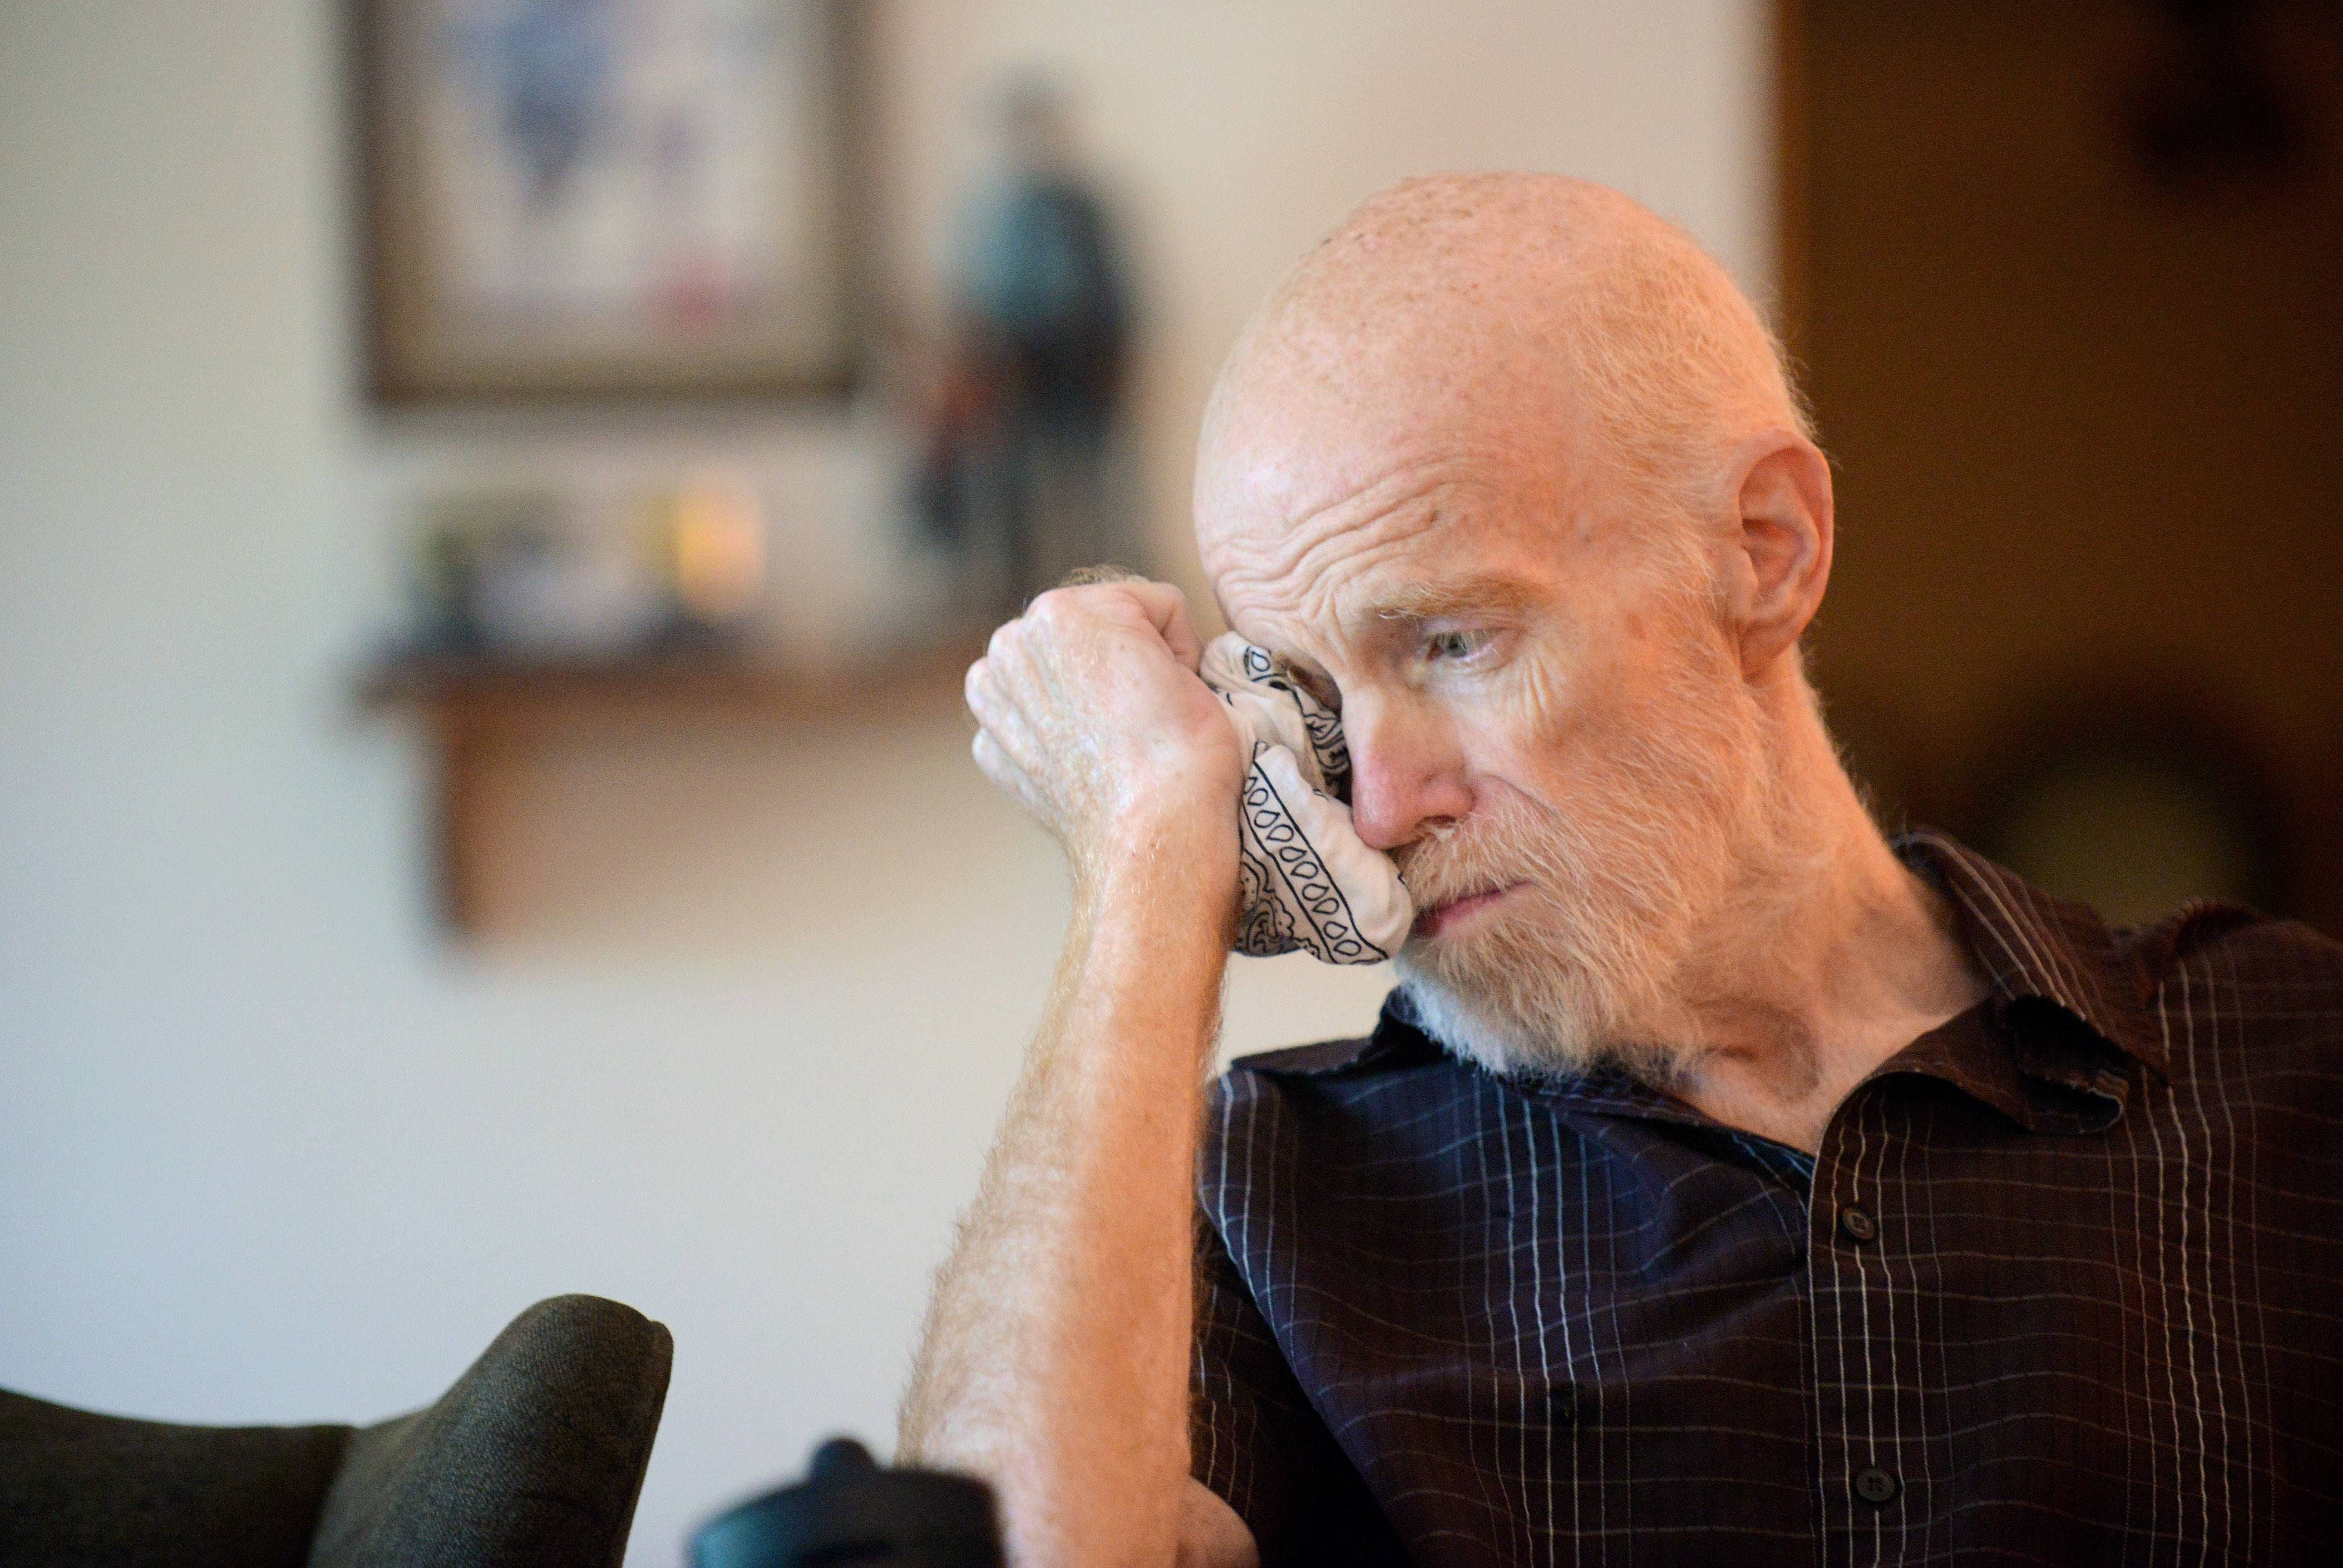 Retired Elgin police Sgt. Tom Linder wipes tears away as his wife, Dawn, tells the story of how she knew she'd always have faith in his recovery. He suffered a stroke in May 2012.